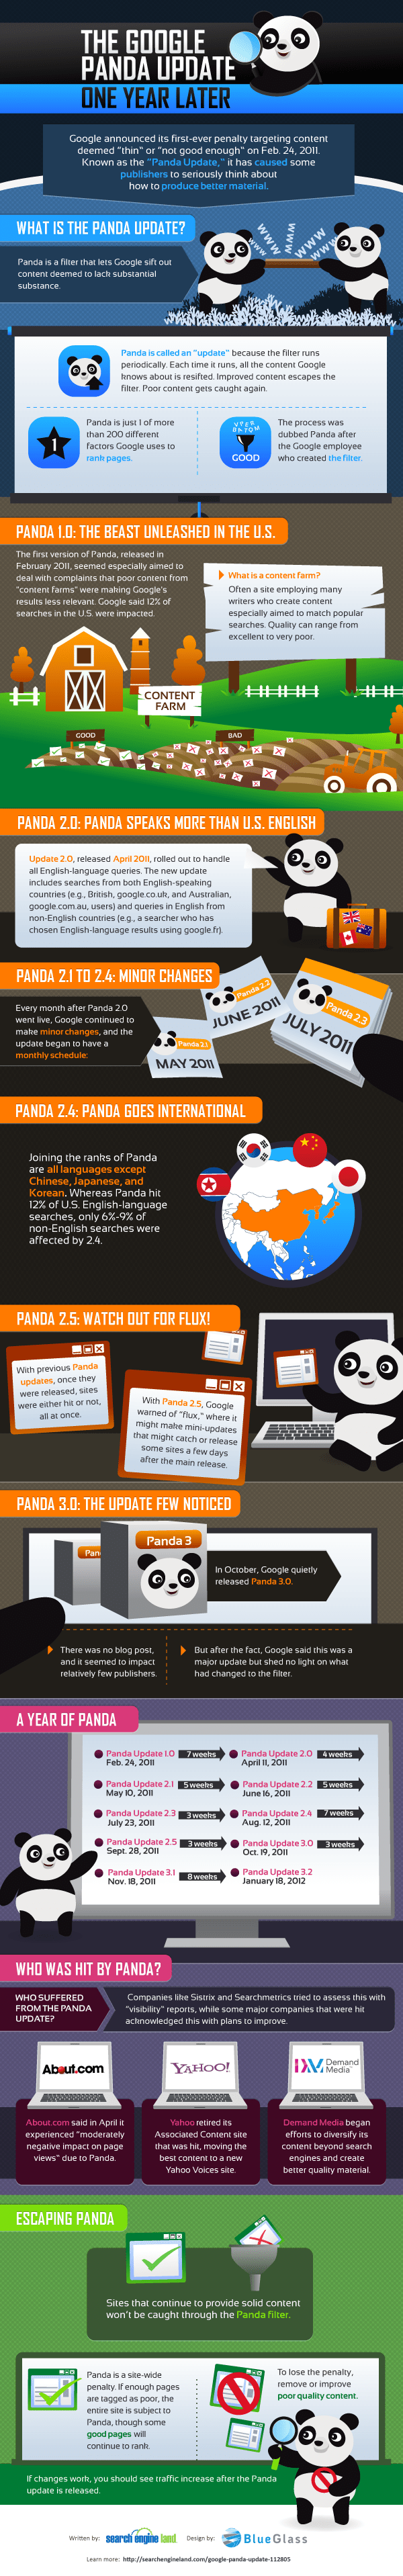 The Google Panda Update, One Year Later